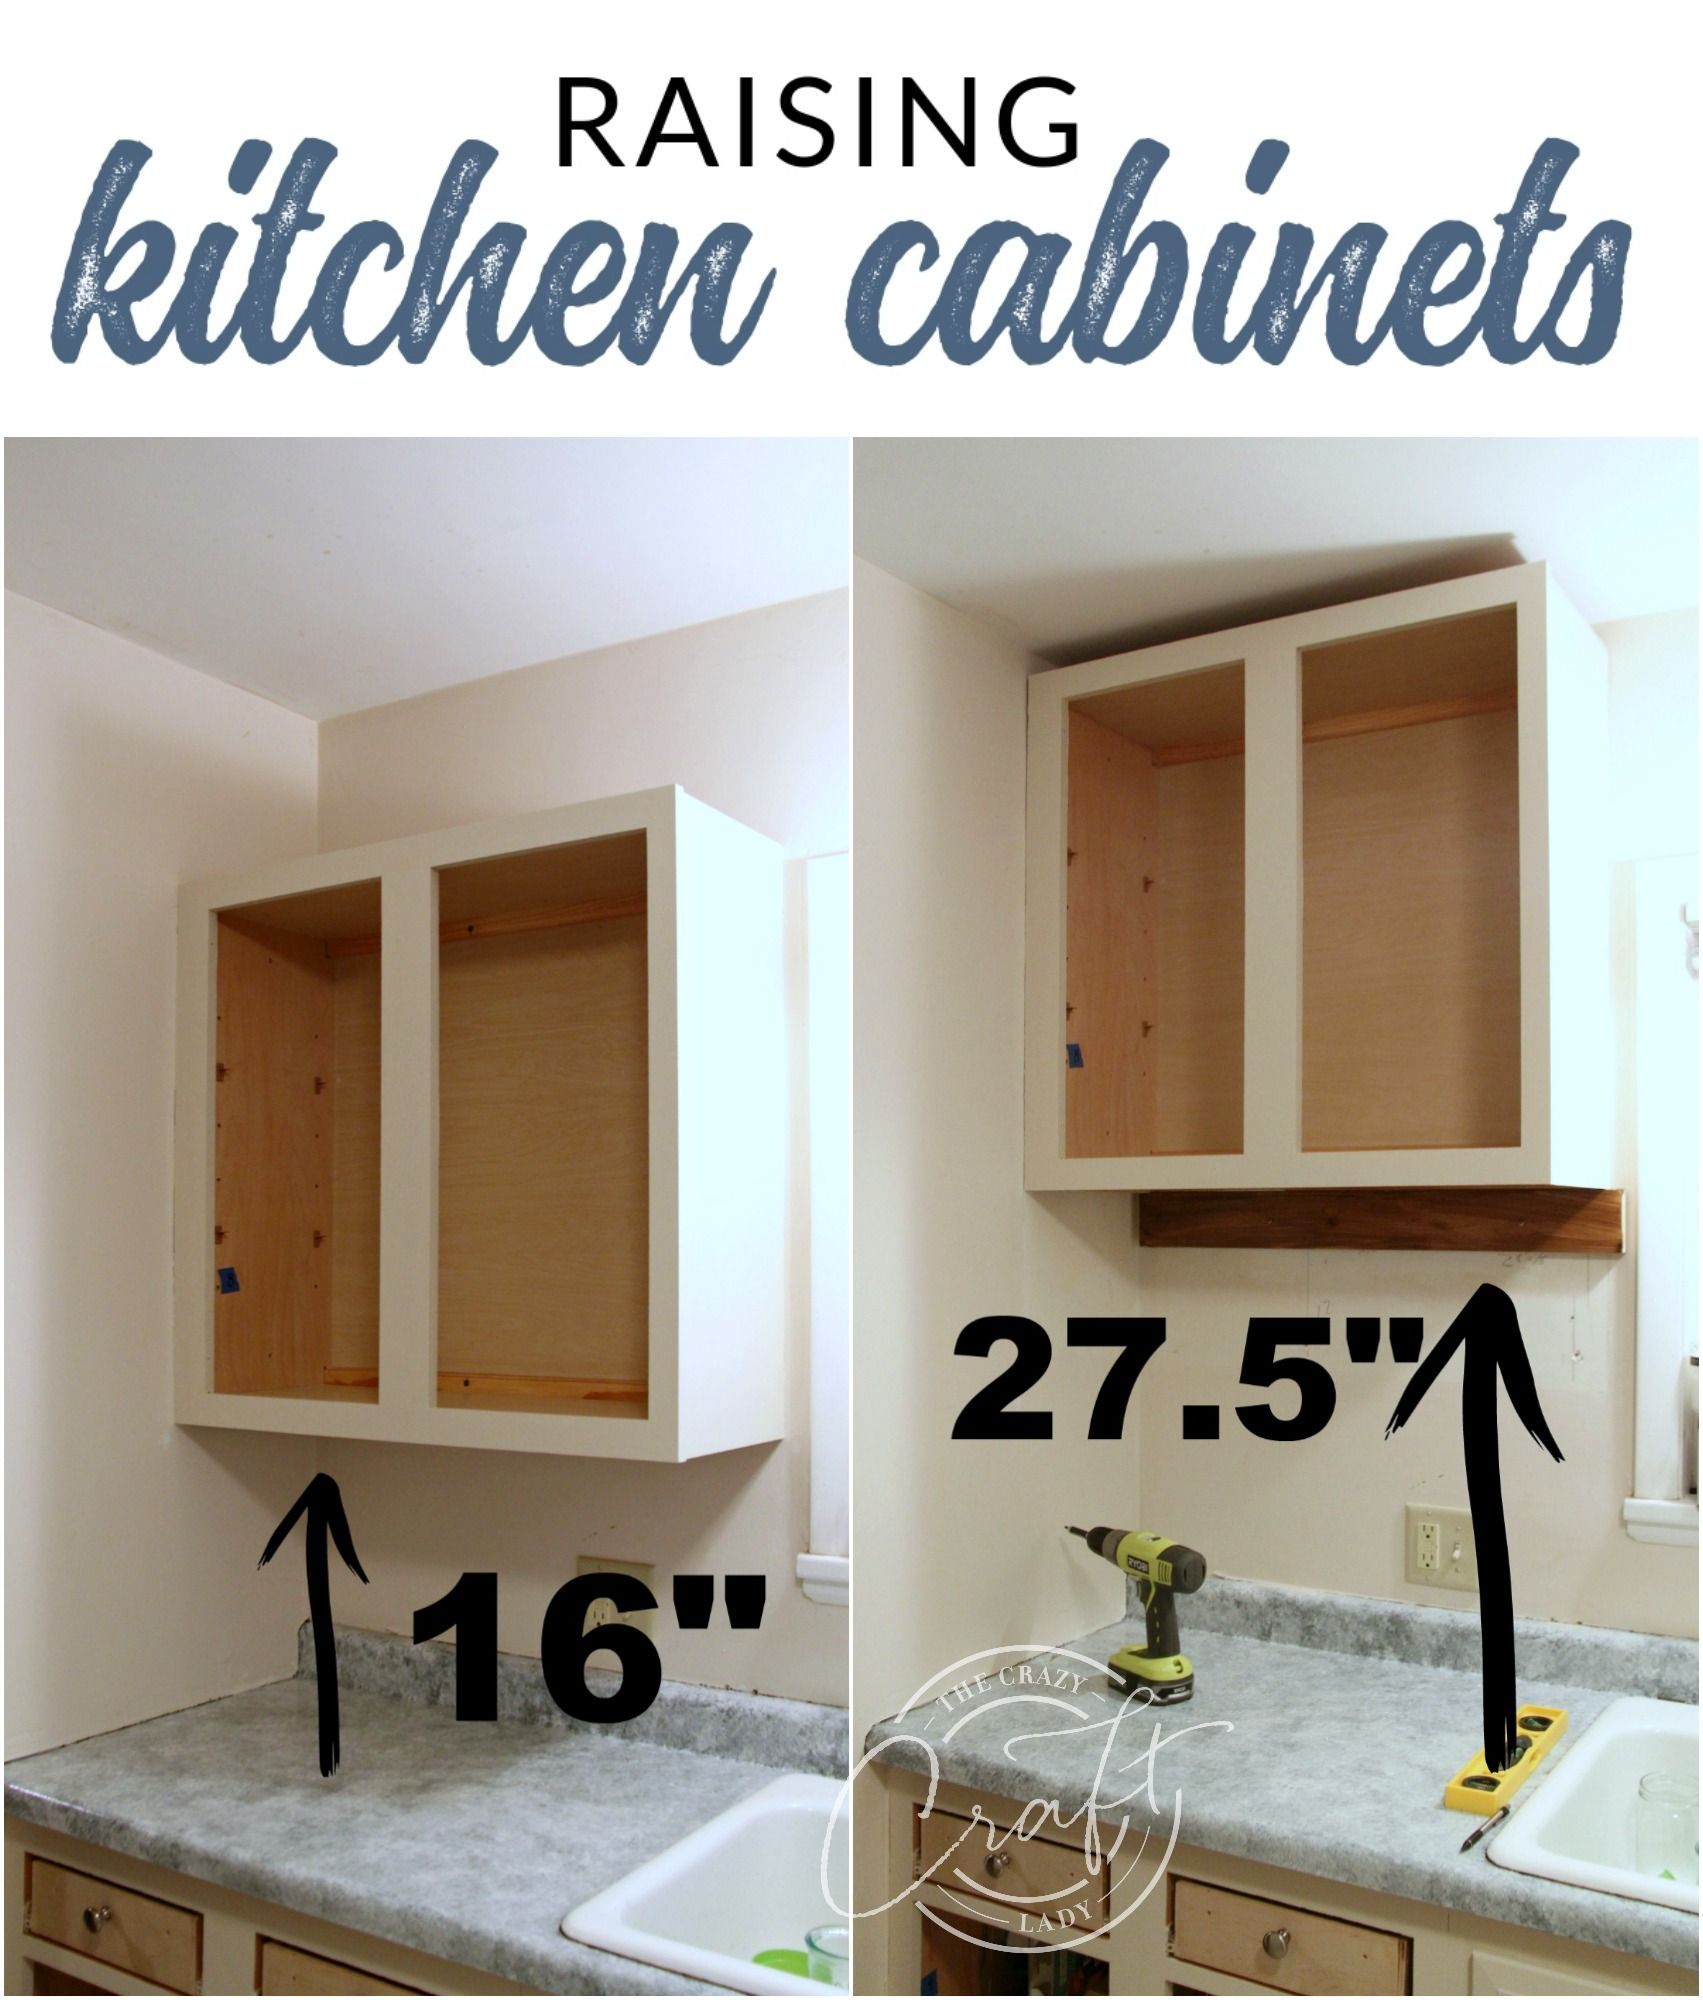 Genius Diy Raising Kitchen Cabinets And Adding An Open Shelf Diy Kitchen Remodel Diy Kitchen Renovation New Kitchen Cabinets